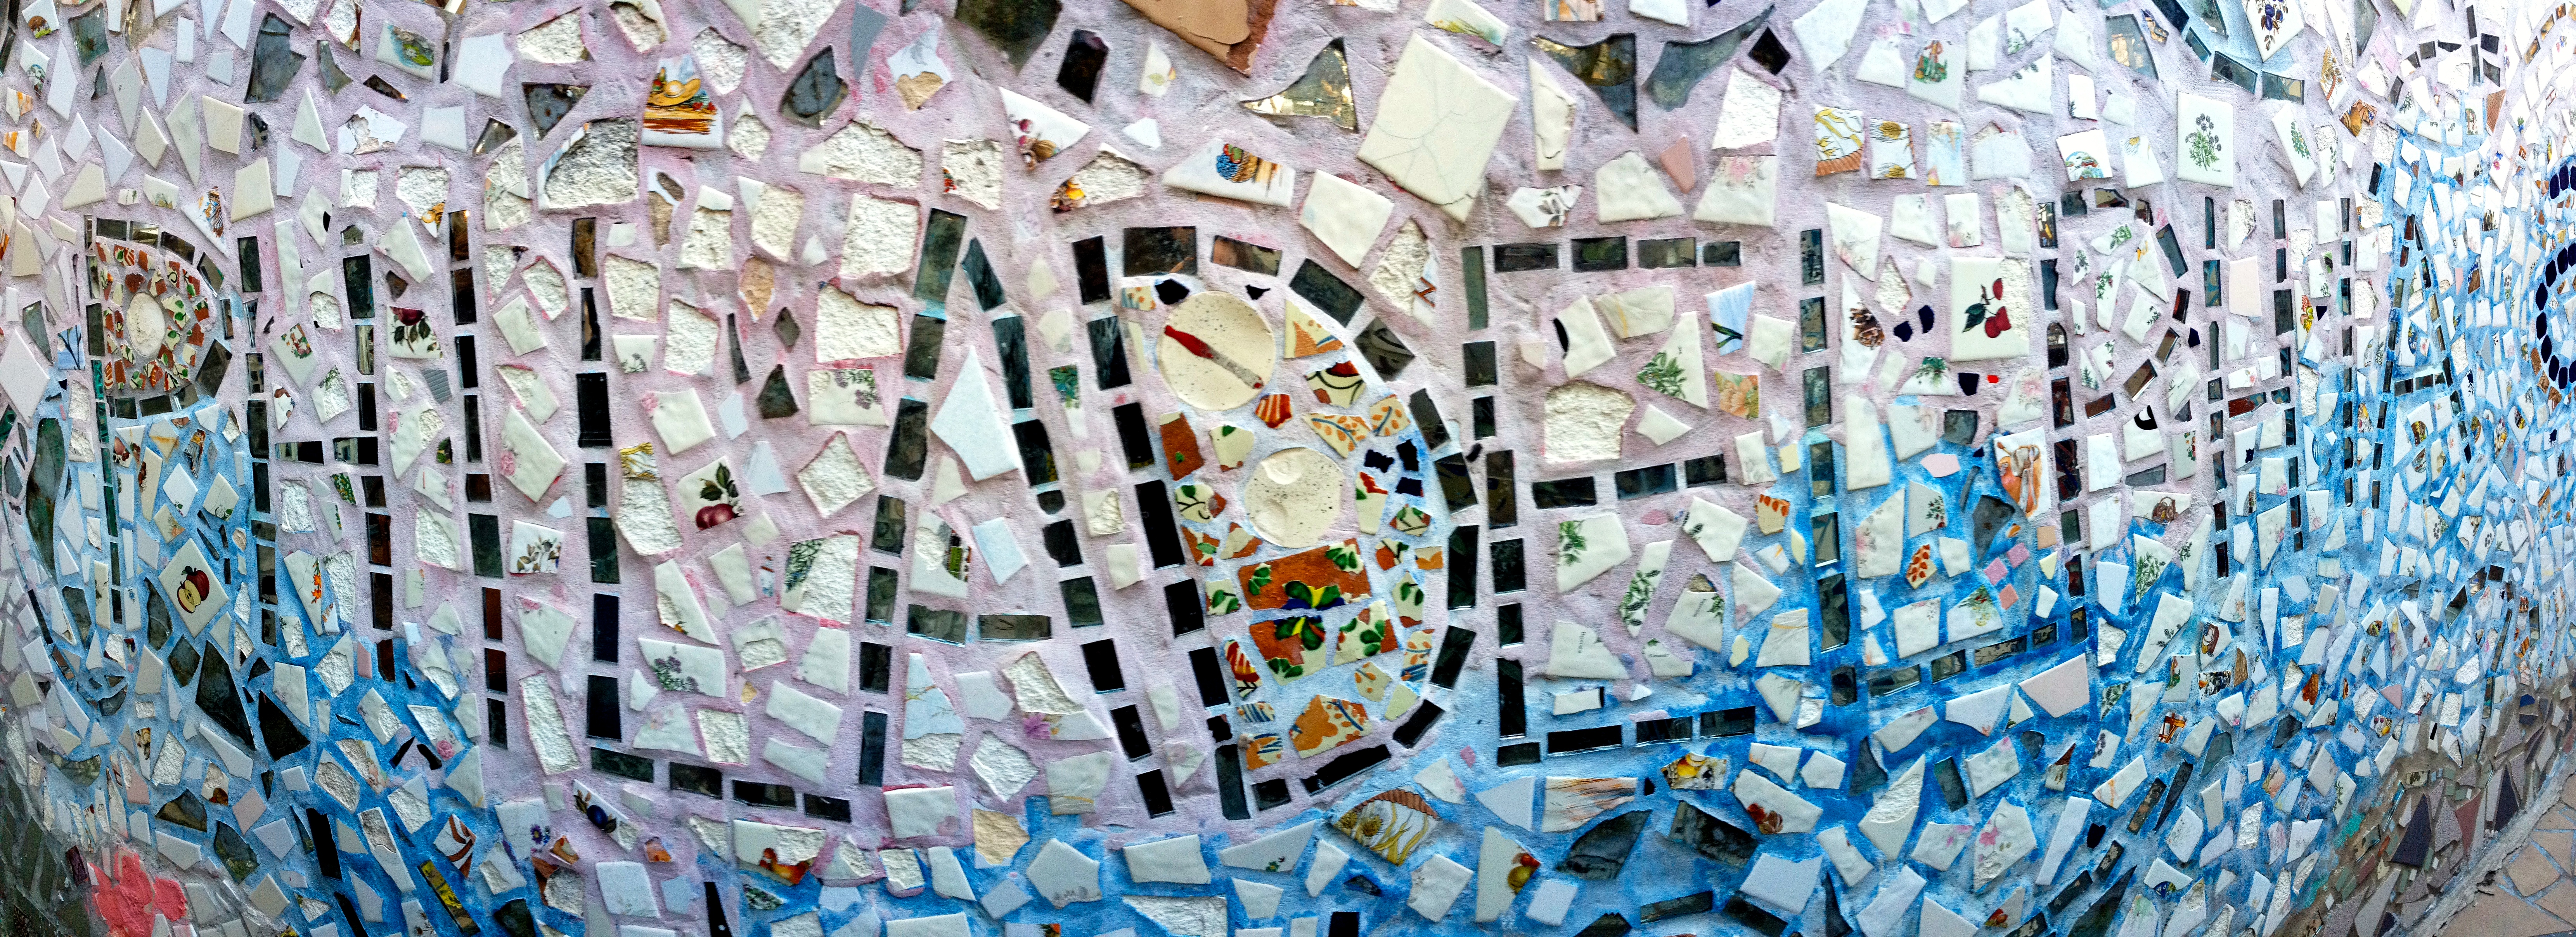 in order to feel the true magic that is possible at philadelphias magic gardens all you have to do is open your mind to the beauty of art within the - Magic Garden Philadelphia